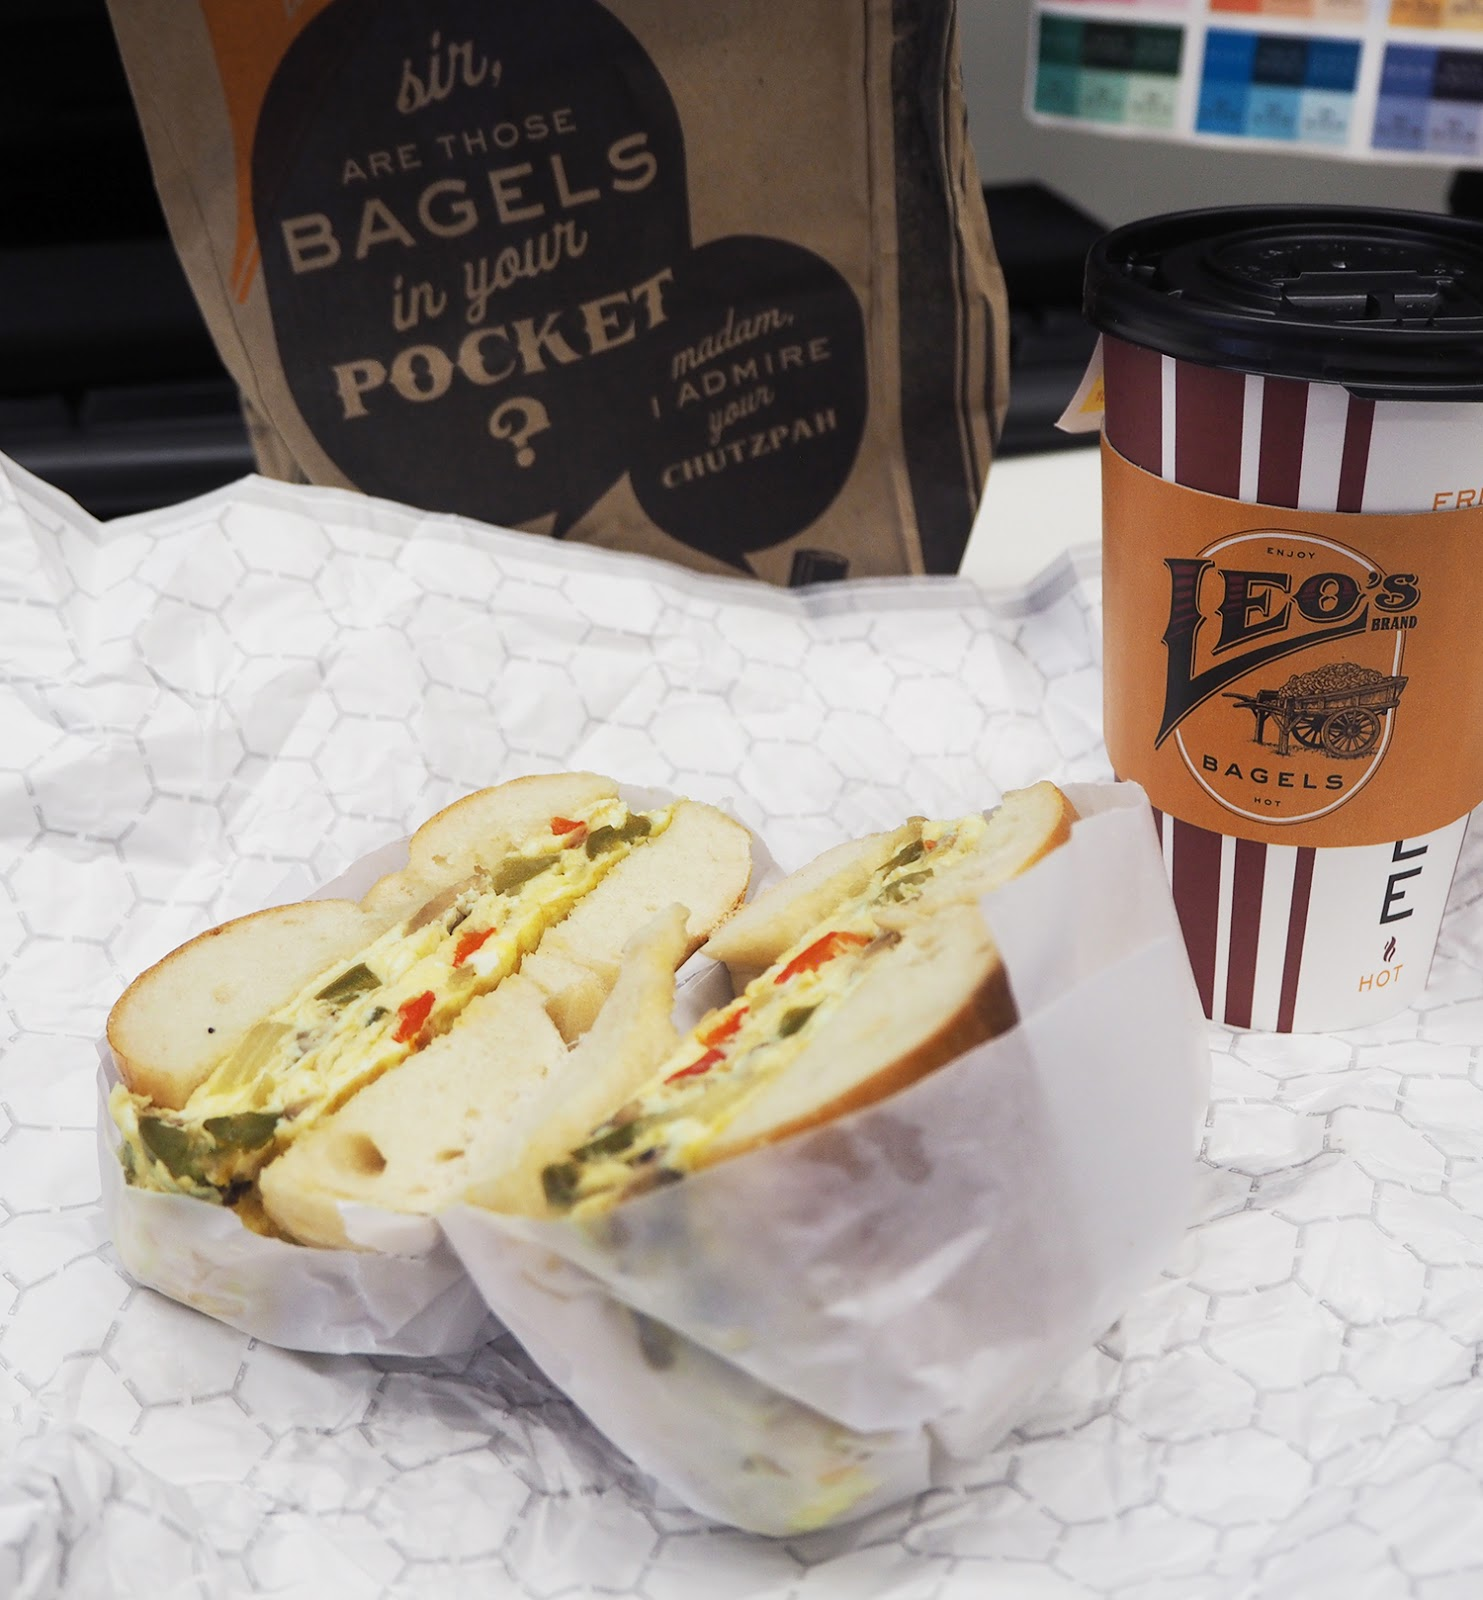 New York Leo's bagels